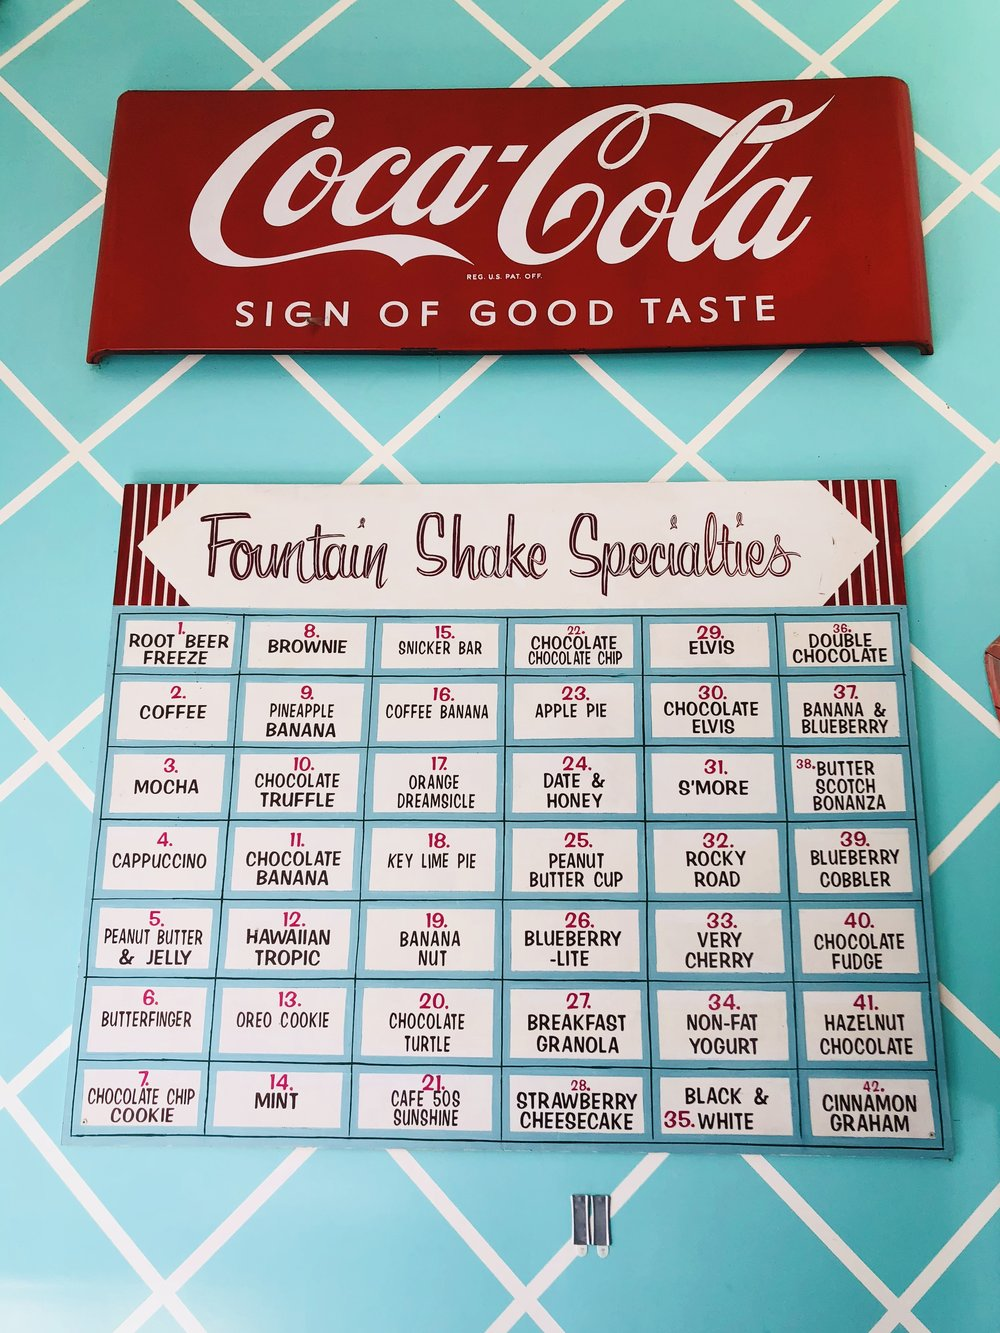 The milkshake menu.  I had one of the chocolate ones.